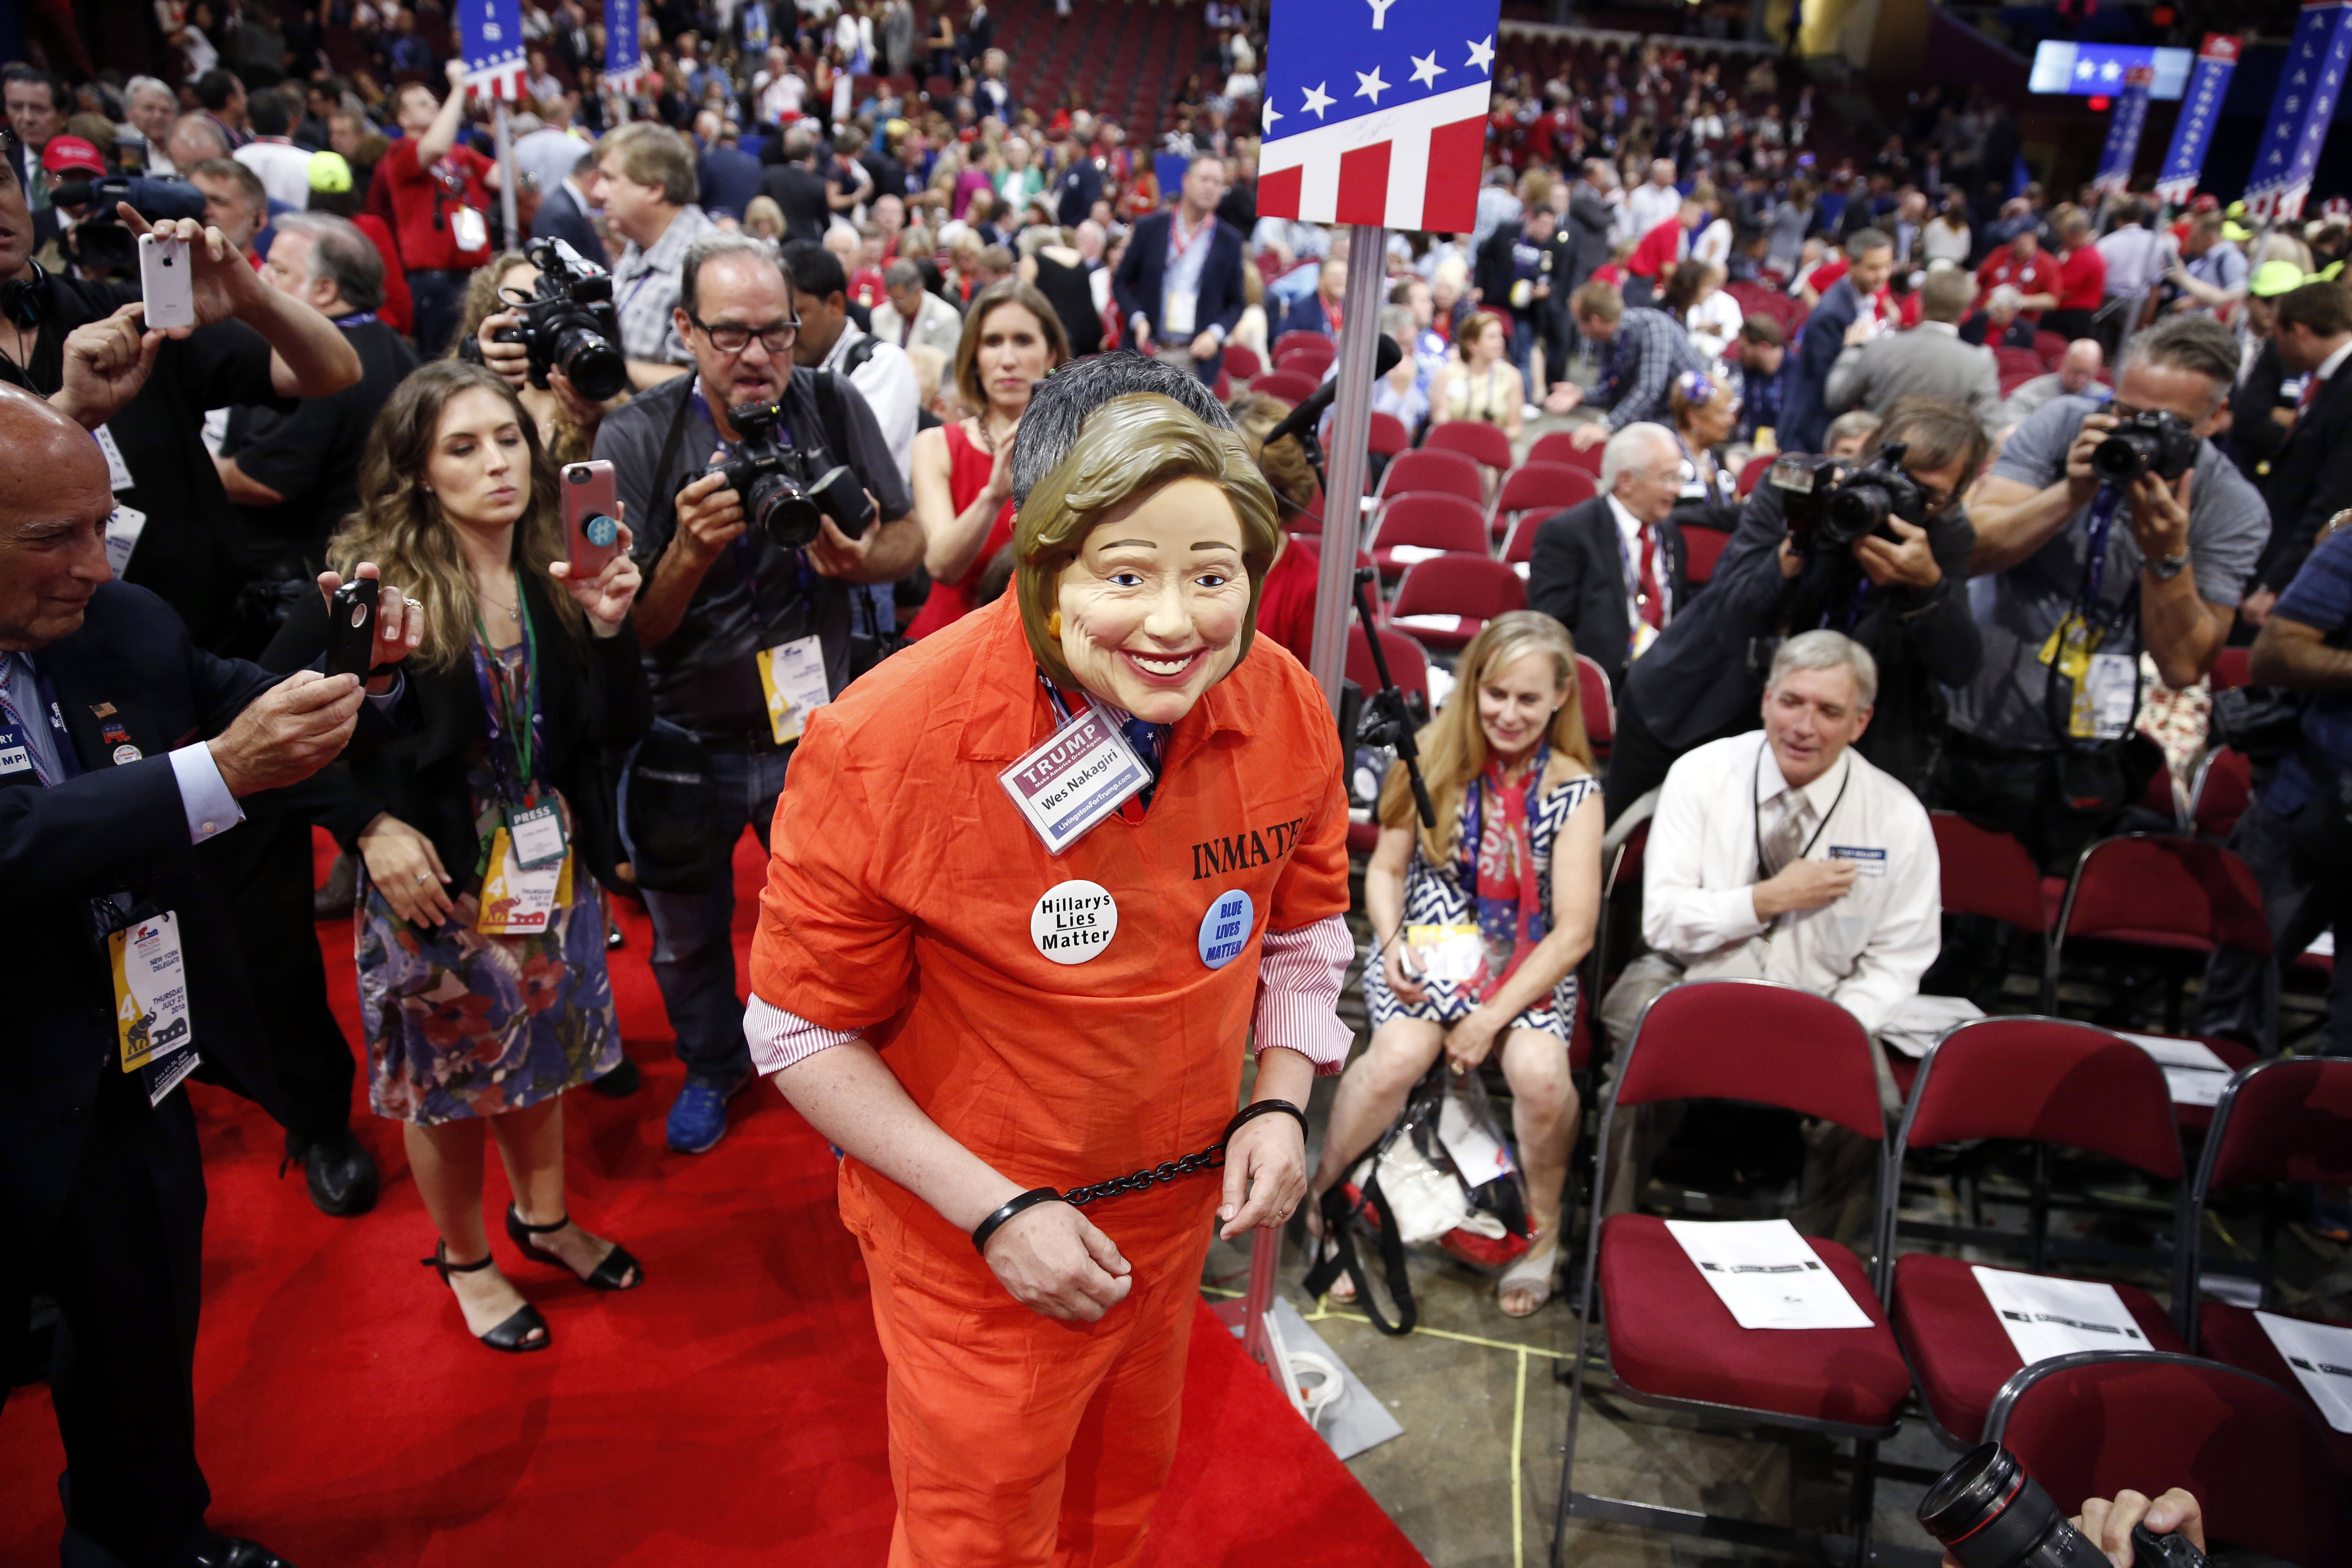 Michigan delegate Wes Nakagiri walks around in a jumpsuit with a Hillary Clinton mask before the final day of the Republican National Convention in Cleveland, Thursday, July 21, 2016. (AP Photo/Matt Rourke)